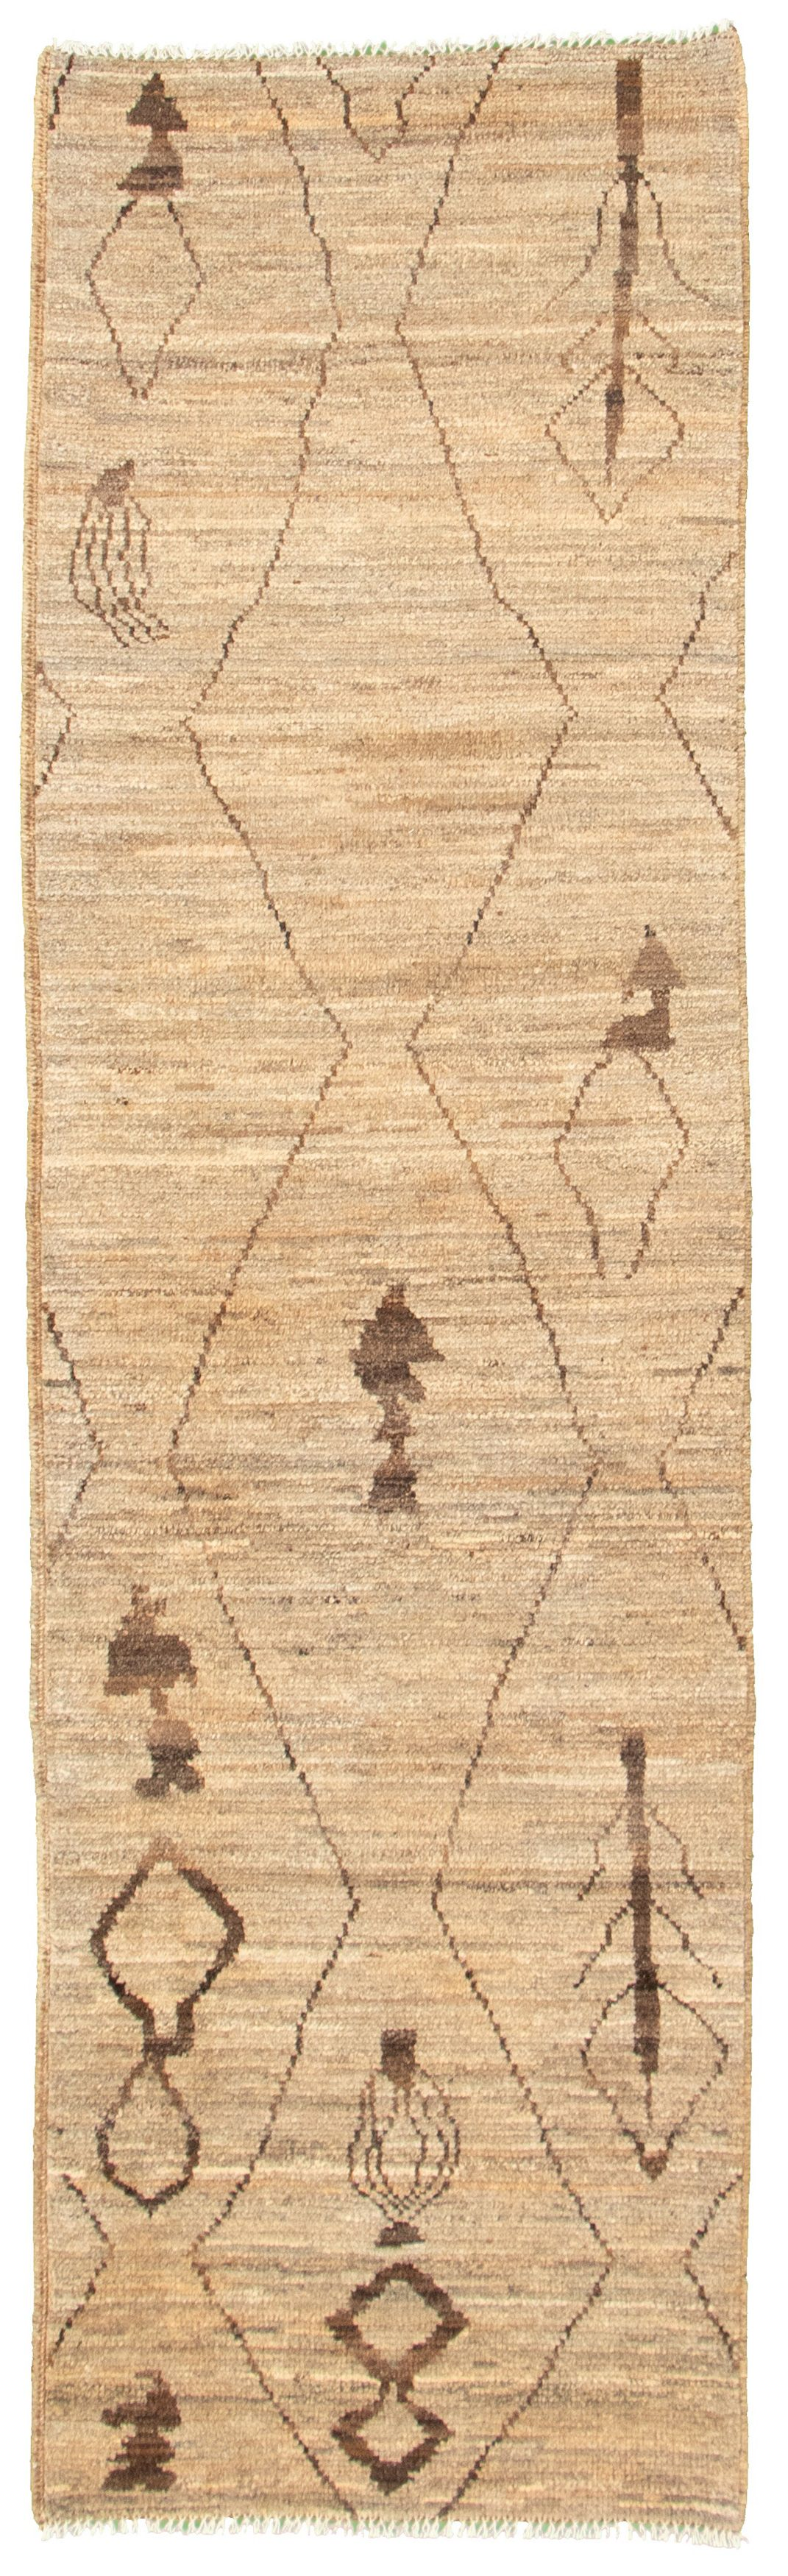 """Hand-knotted Marrakech Grey, Tan Wool Rug 2'10"""" x 9'8"""" Size: 2'10"""" x 9'8"""""""